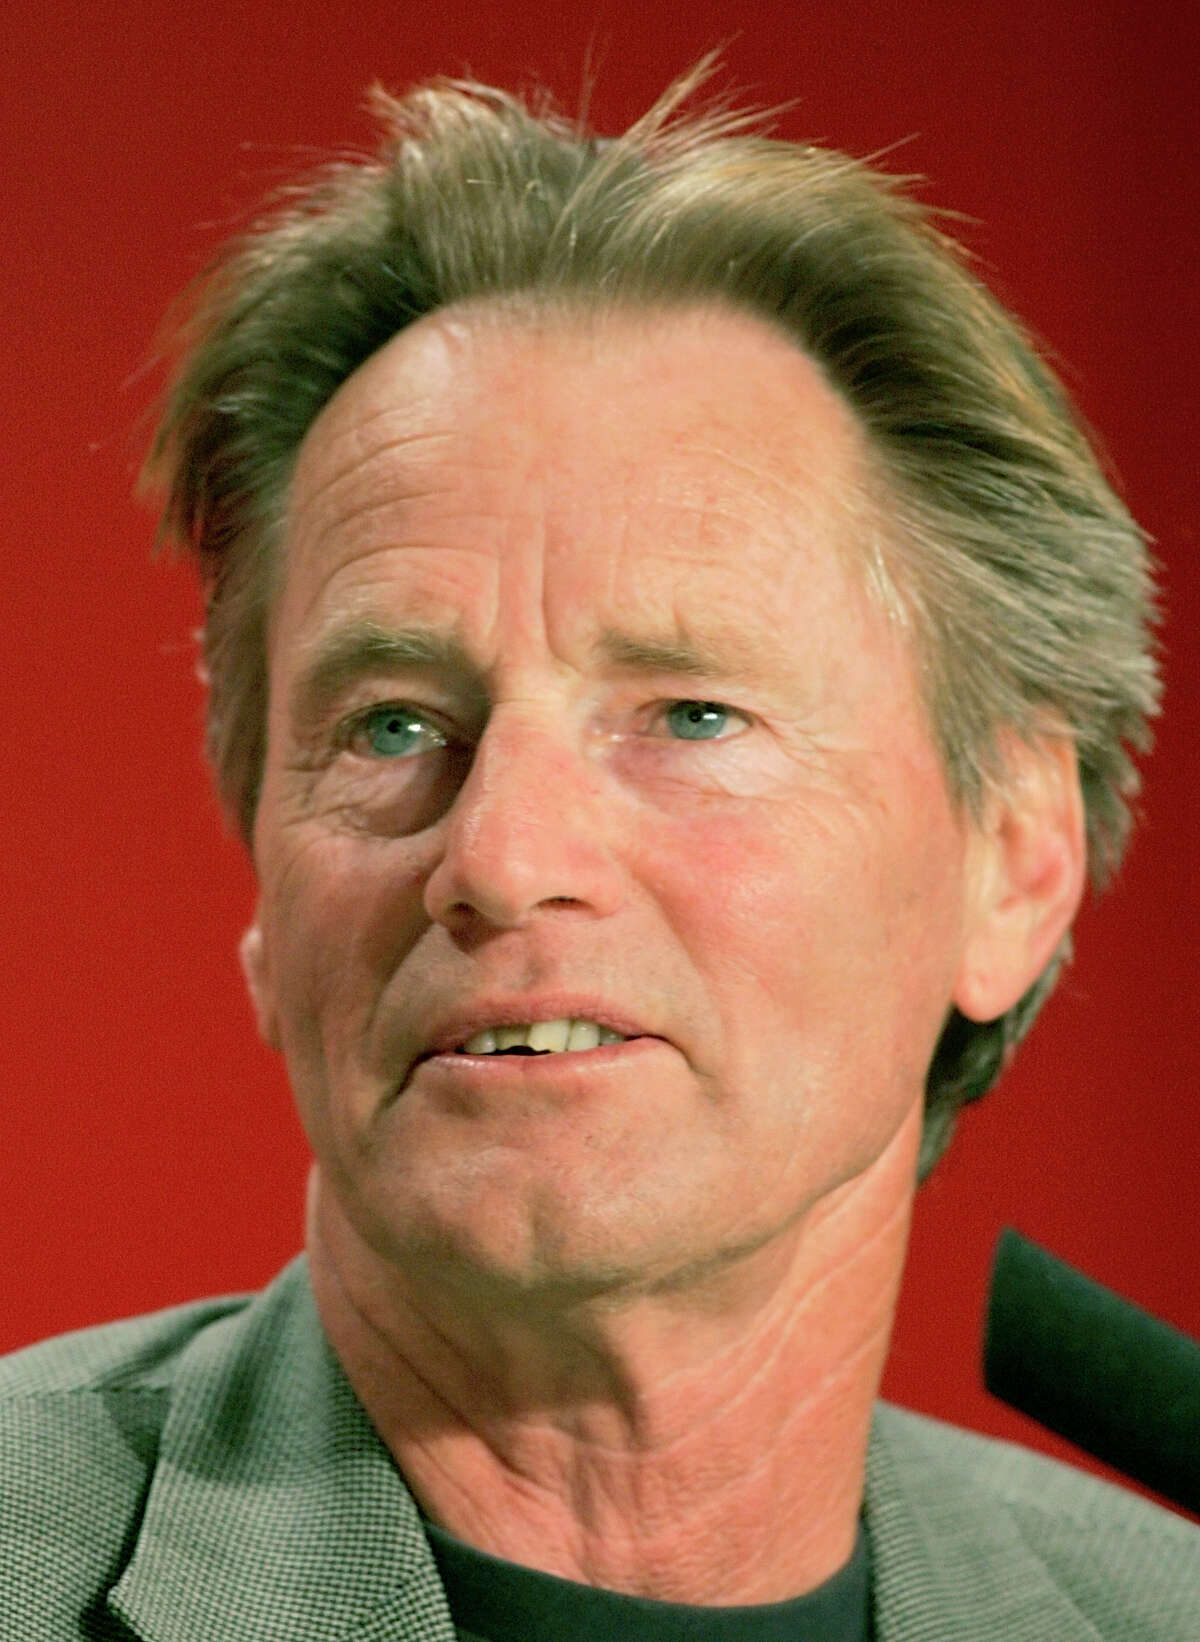 FILE - In this May 19, 2005 file photo, Sam Shepard attends a press conference at the Cannes film festival in Cannes, southern France. Shepard, the Pulitzer Prize-winning playwright and Oscar-nominated actor, died of complications from ALS, Thursday, July 27, 2017, at his home in Kentucky. He was 73. (AP Photo/Laurent Emmanuel, File) ORG XMIT: NYET101